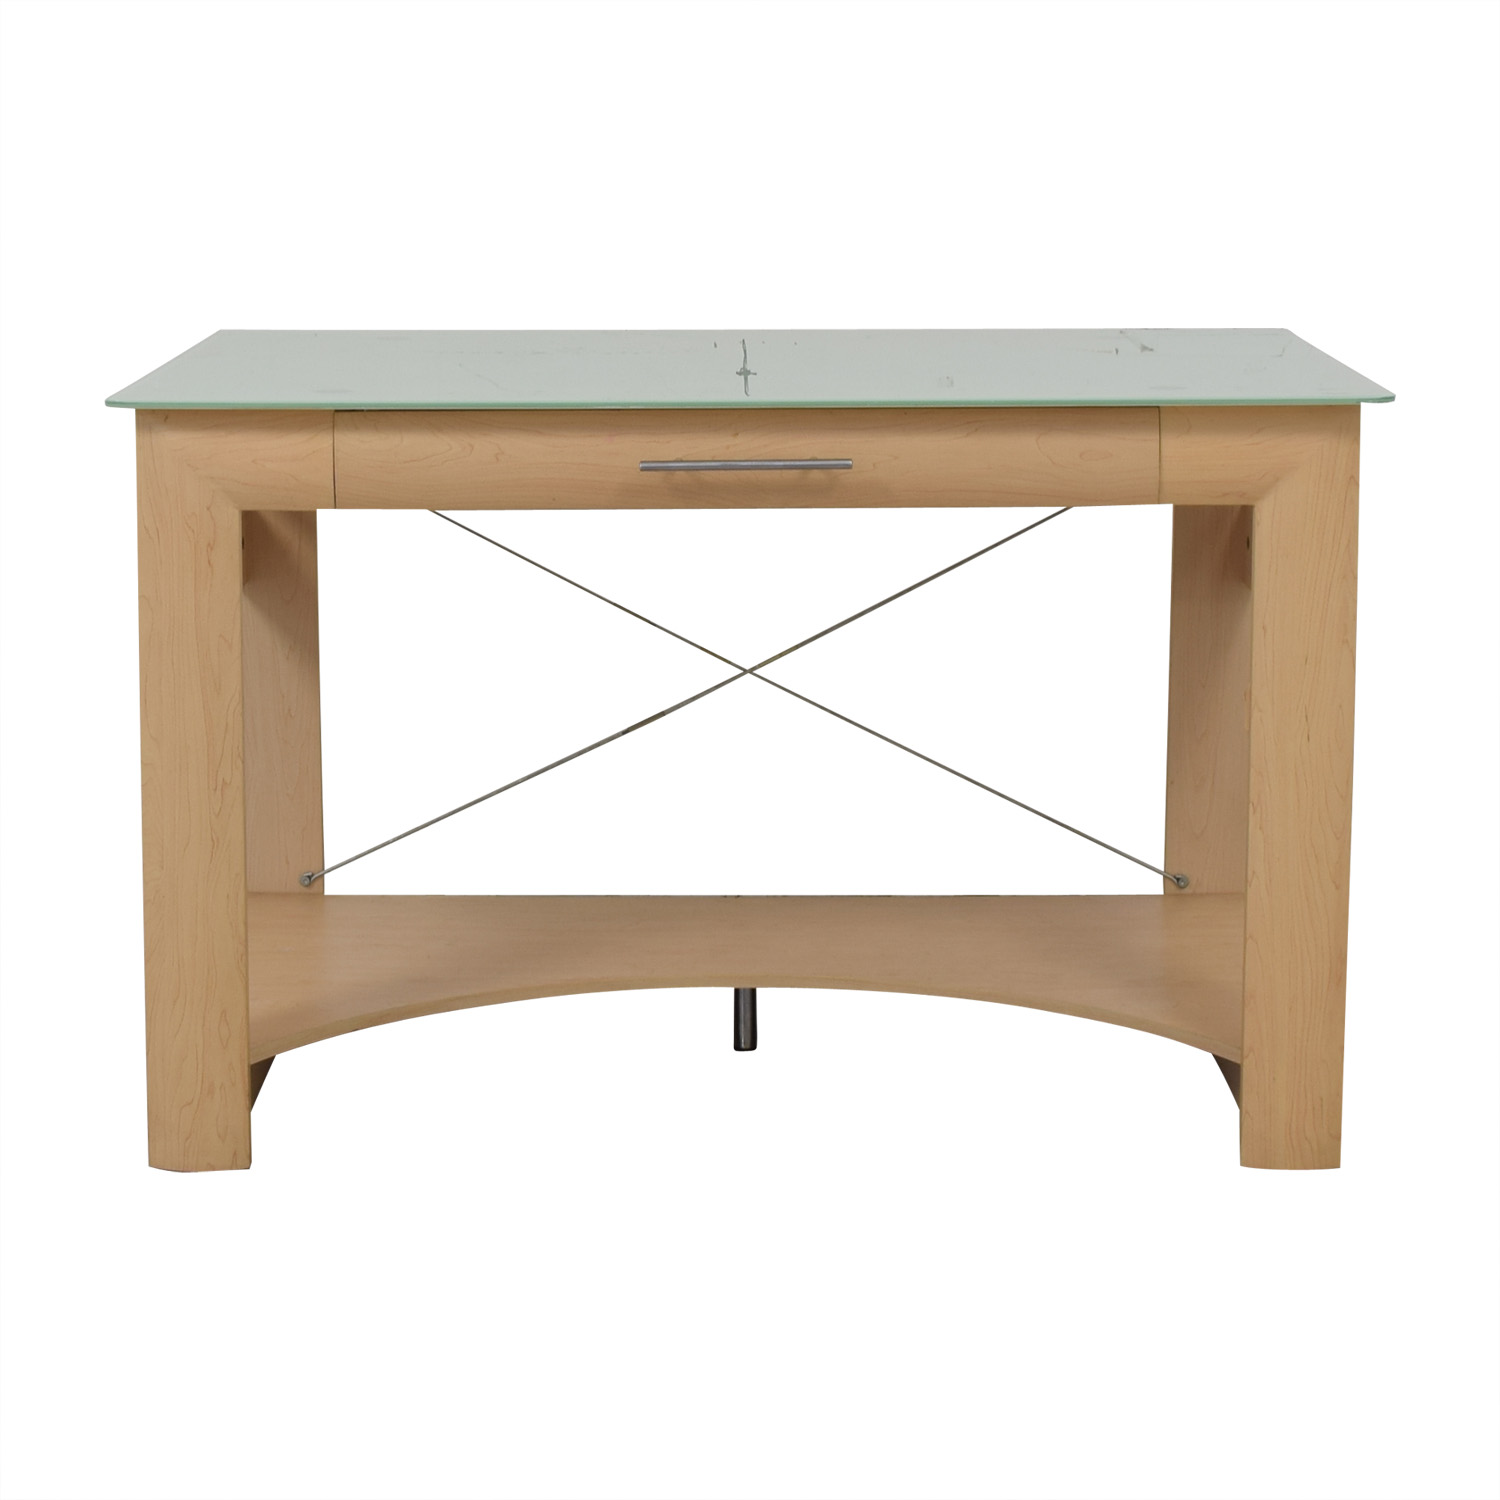 Crate & Barrel Glass Top Desk / Home Office Desks